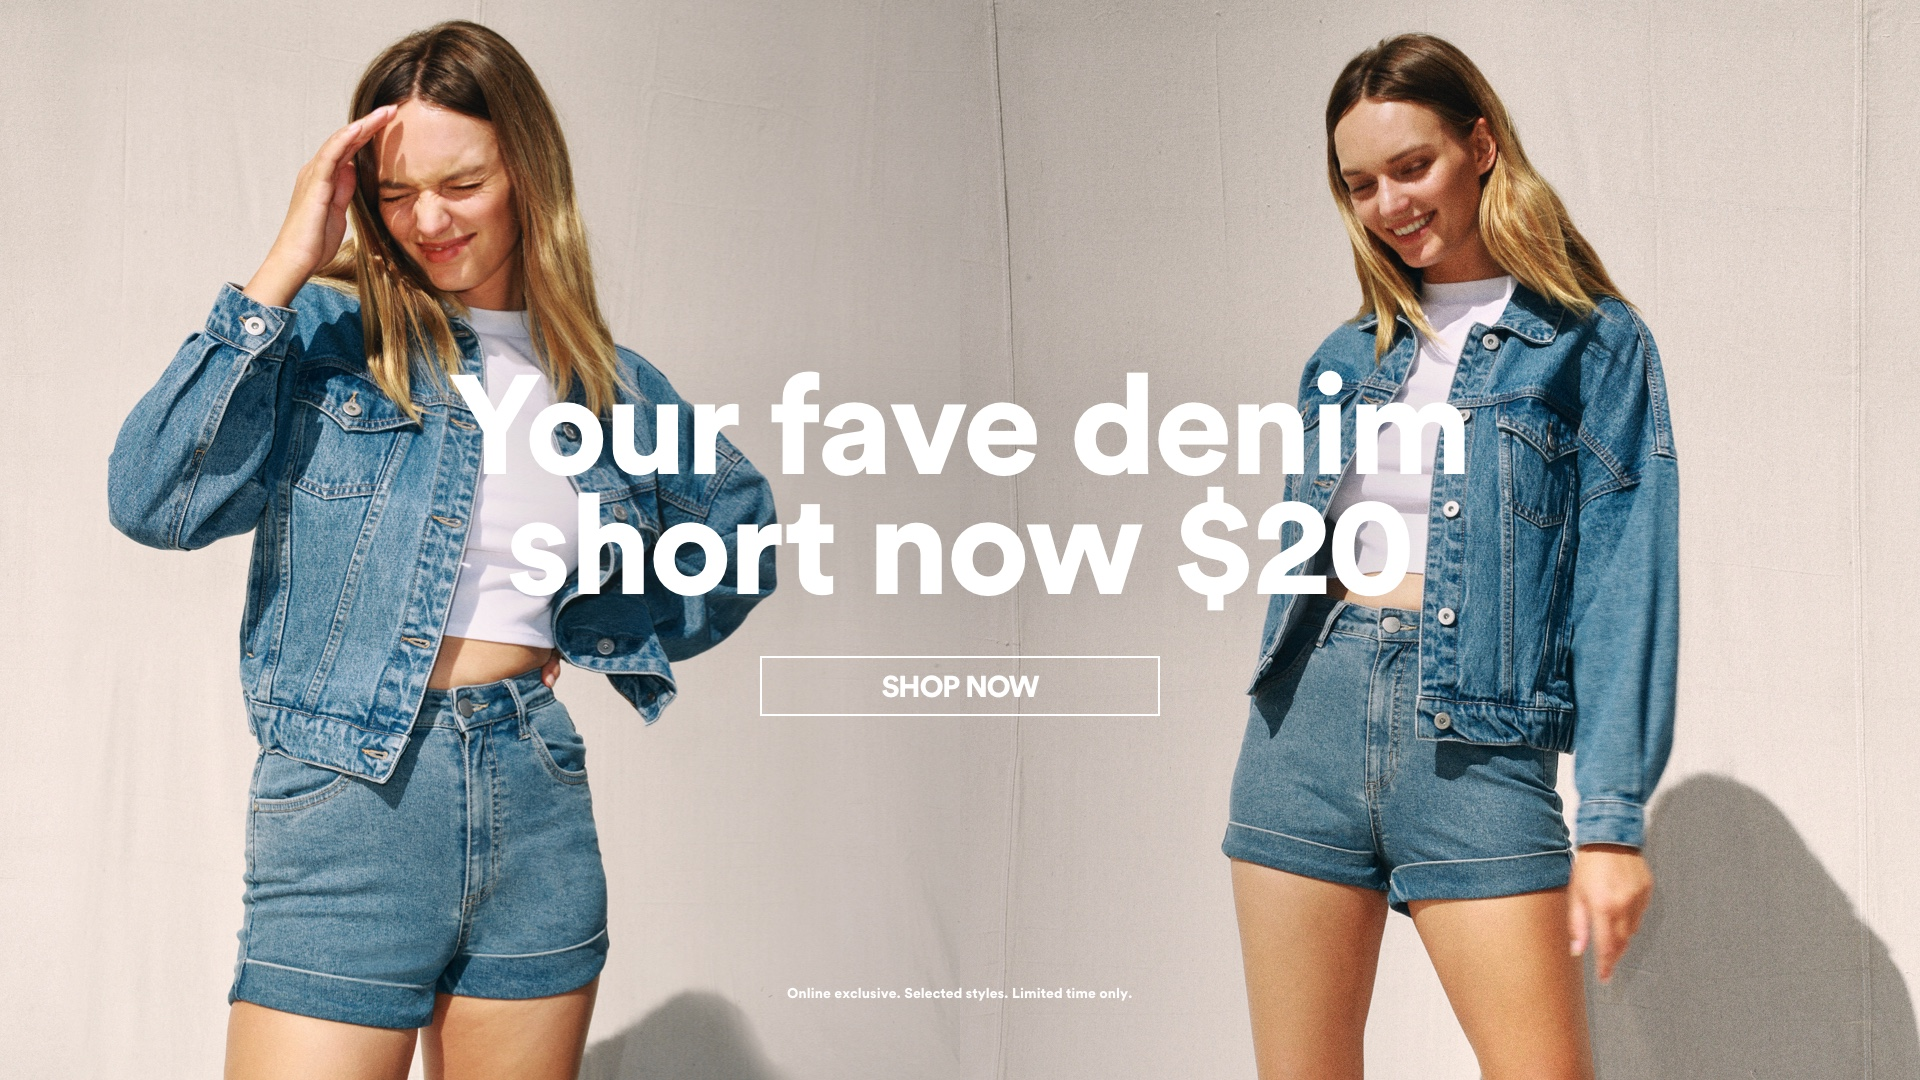 Cotton On. Your Fave Denim Short Now $20. Click to Shop Womens.